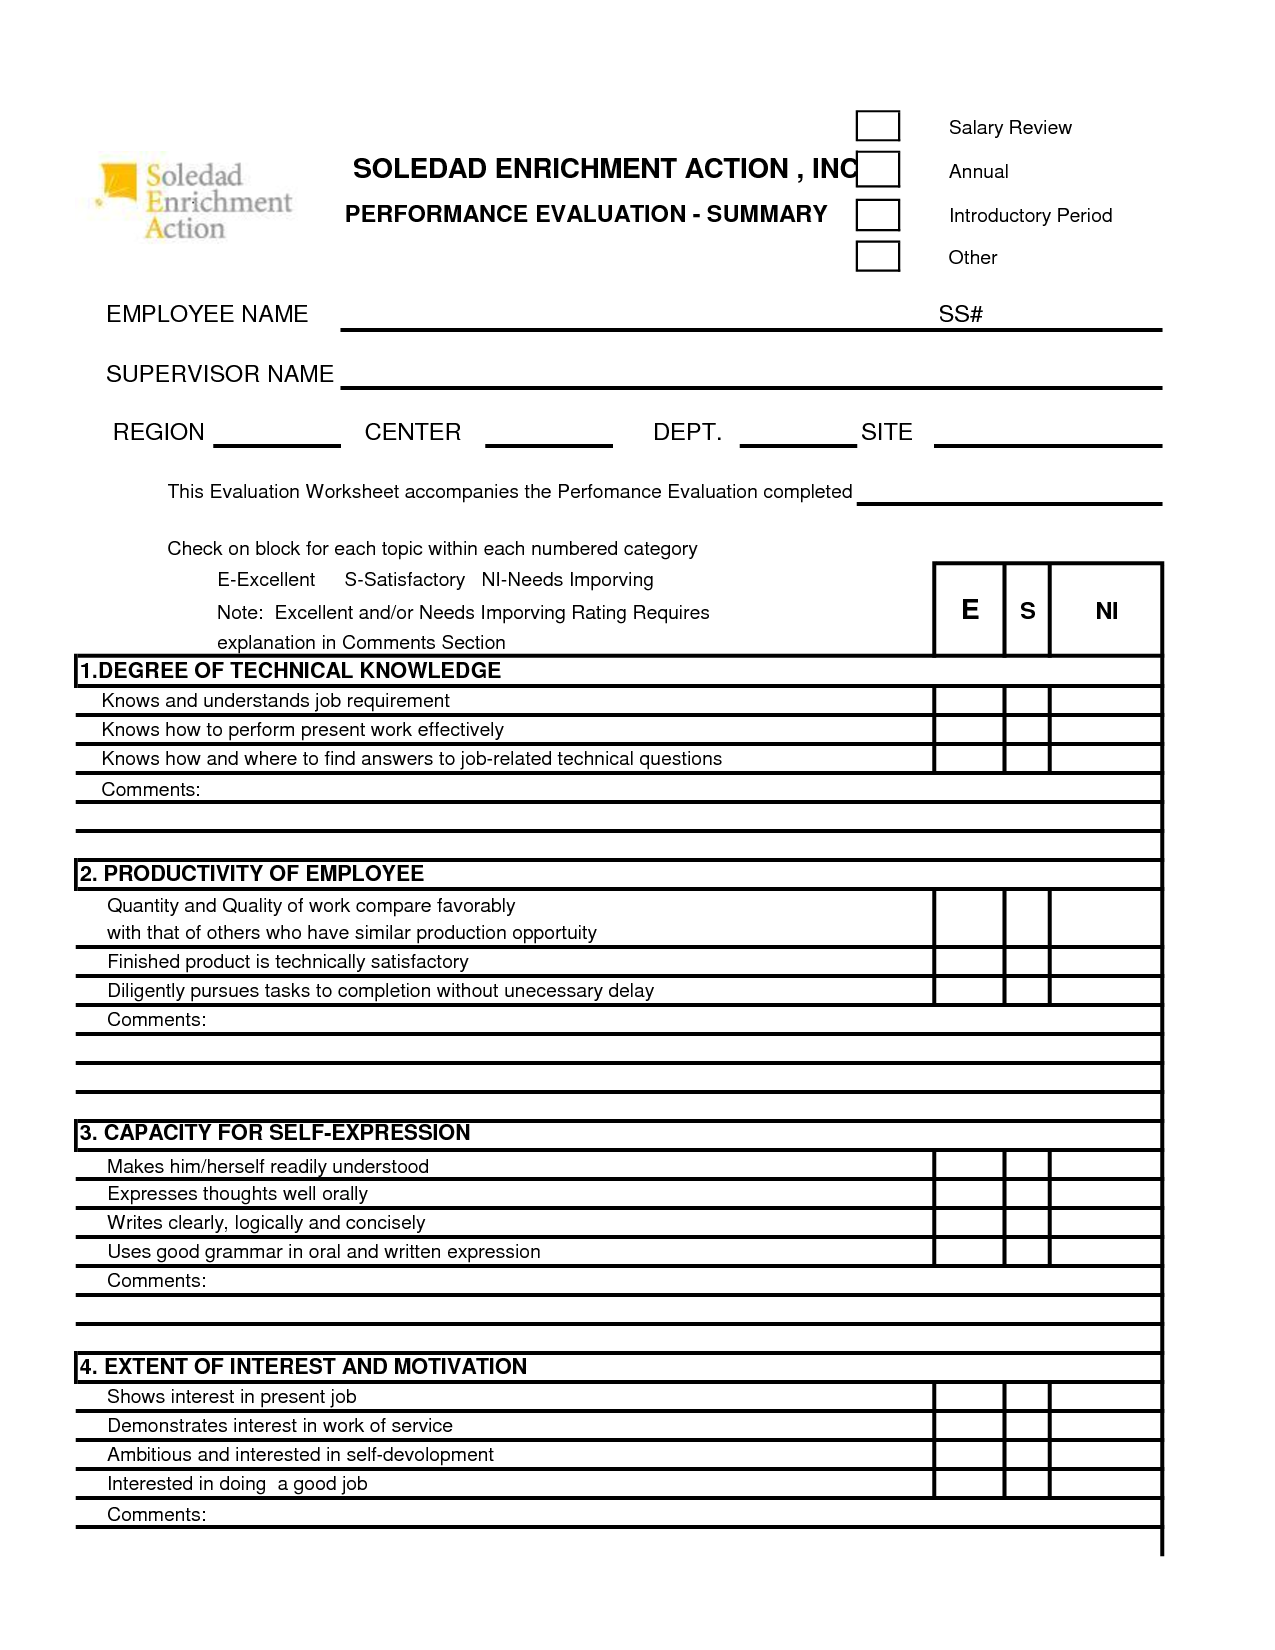 free 360 performance appraisal form - Google Search | The career ...